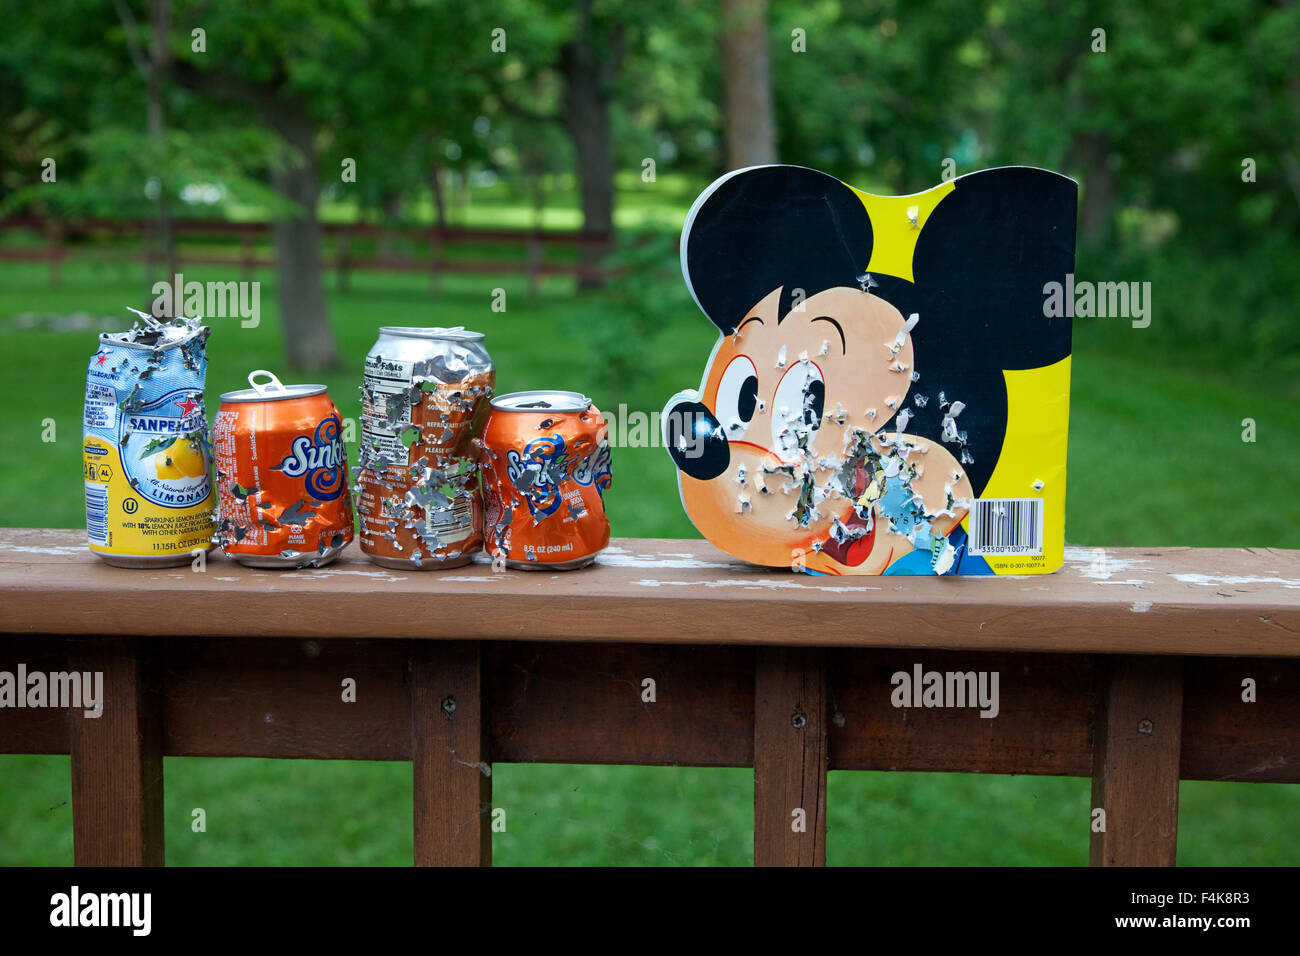 Lineup of bullet ridden soda cans and Mickey Mouse book used for shotgun target practice. Clitherall Minnesota MN - Stock Image